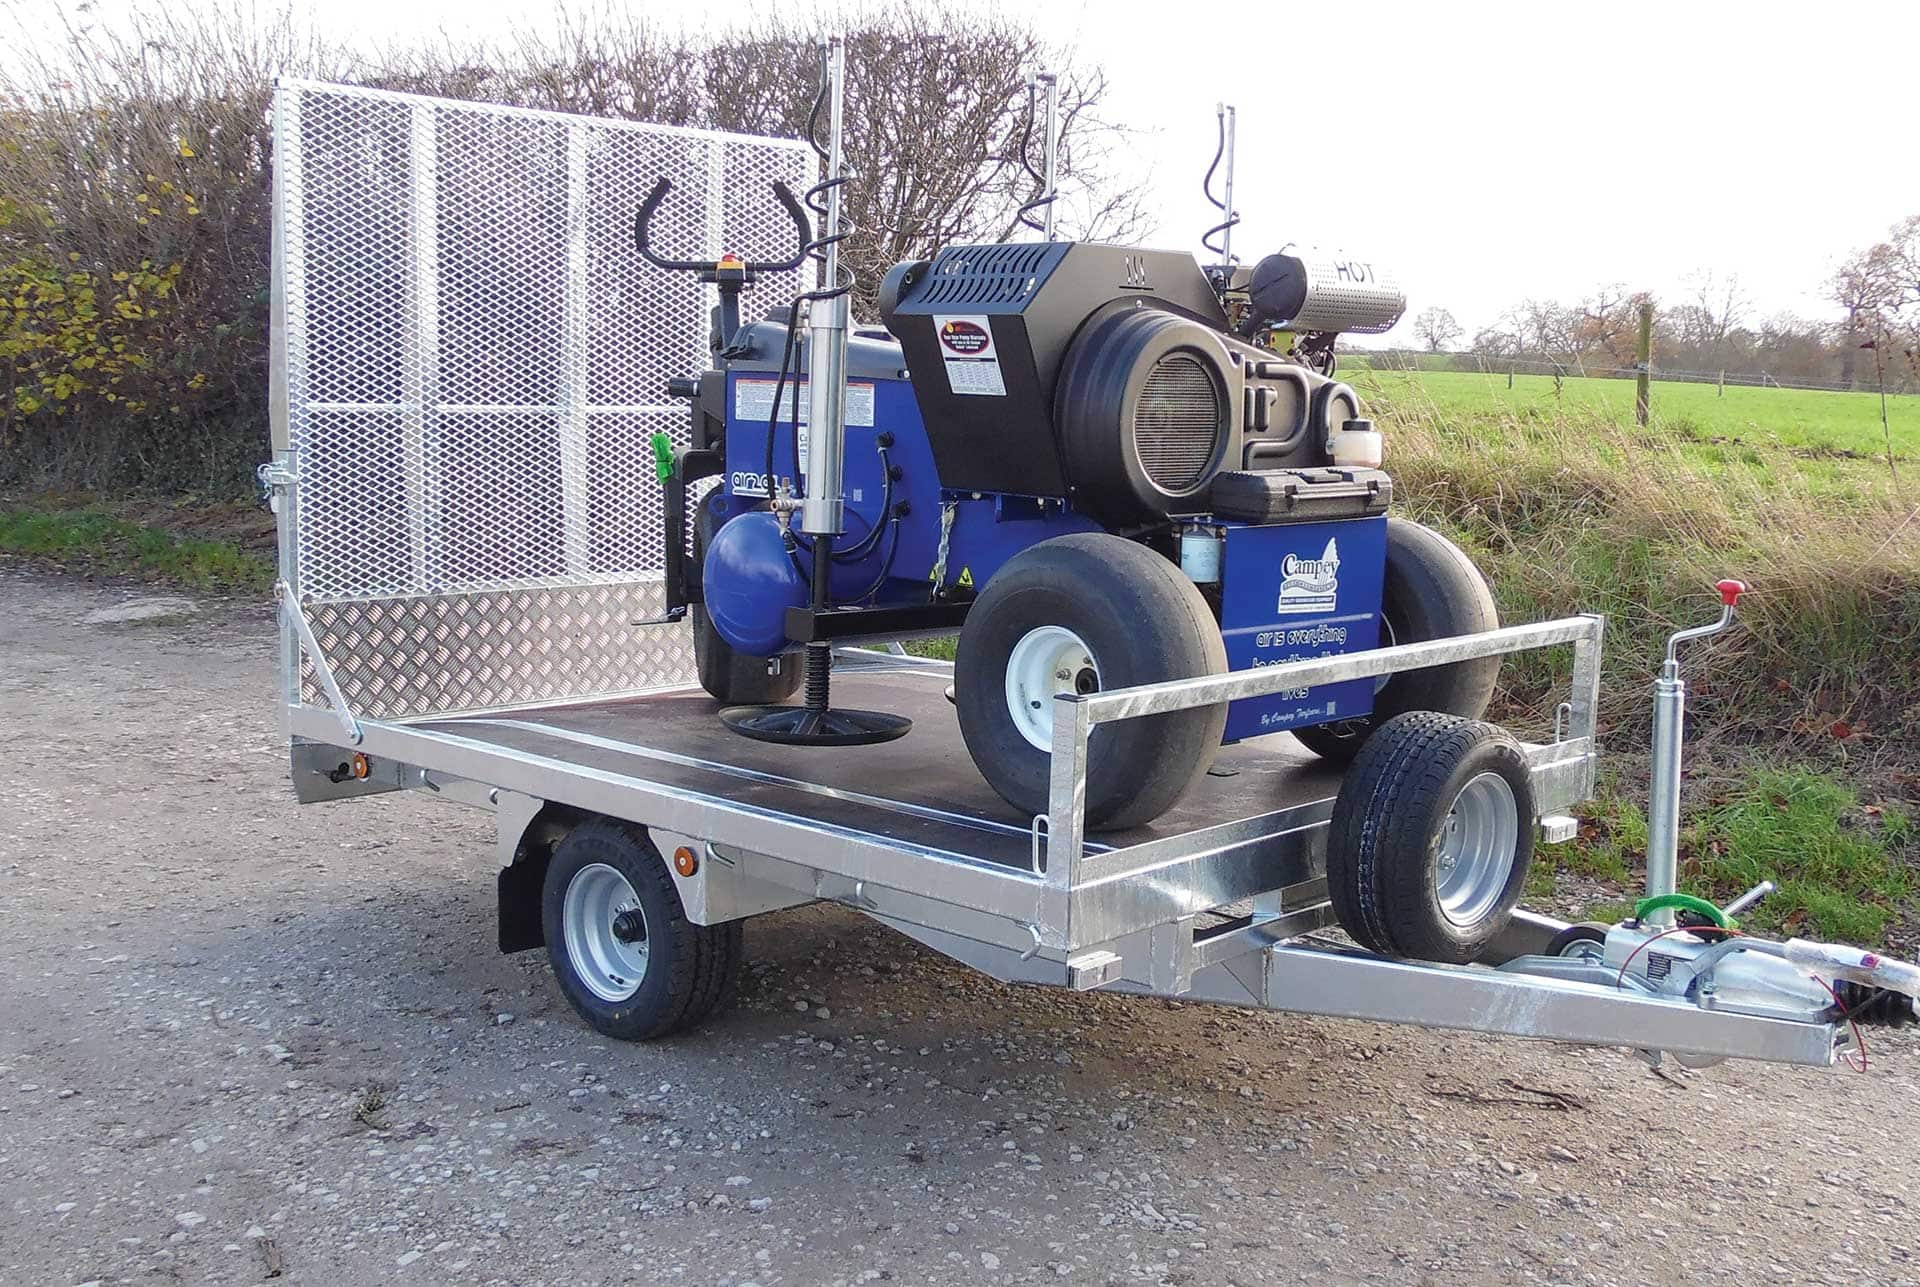 Campey Easy Load Trailer Campey Turf Care Systems